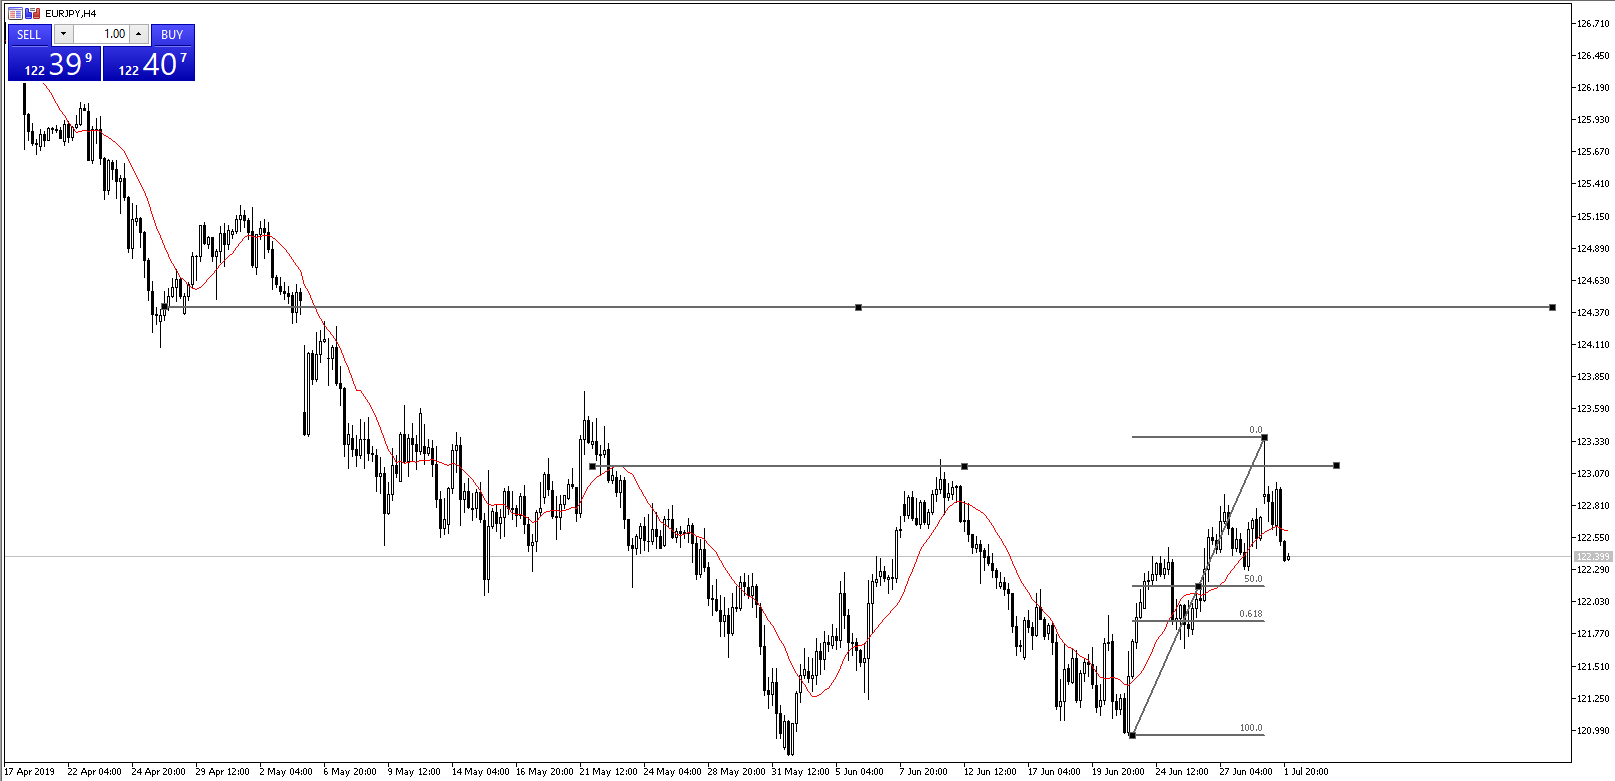 Chart of the Day - EURJPY - July 2, 2019